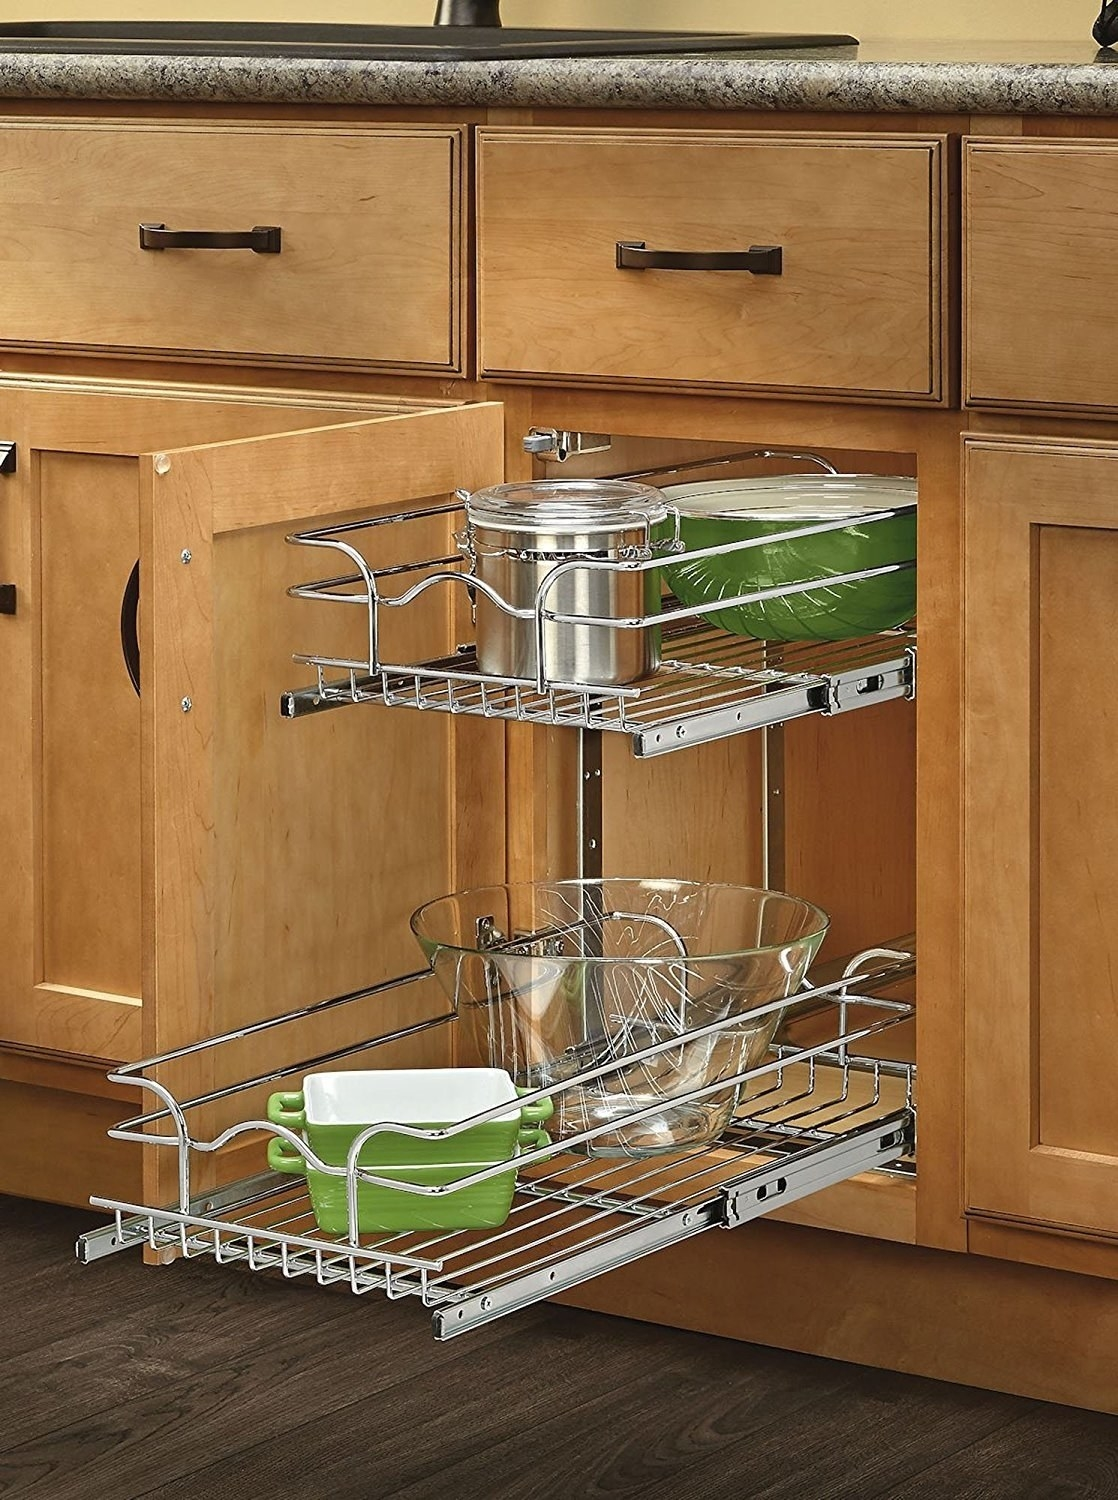 A cabinet system installed with two wire drawers that pull out for easy access to bowls and other kitchen items